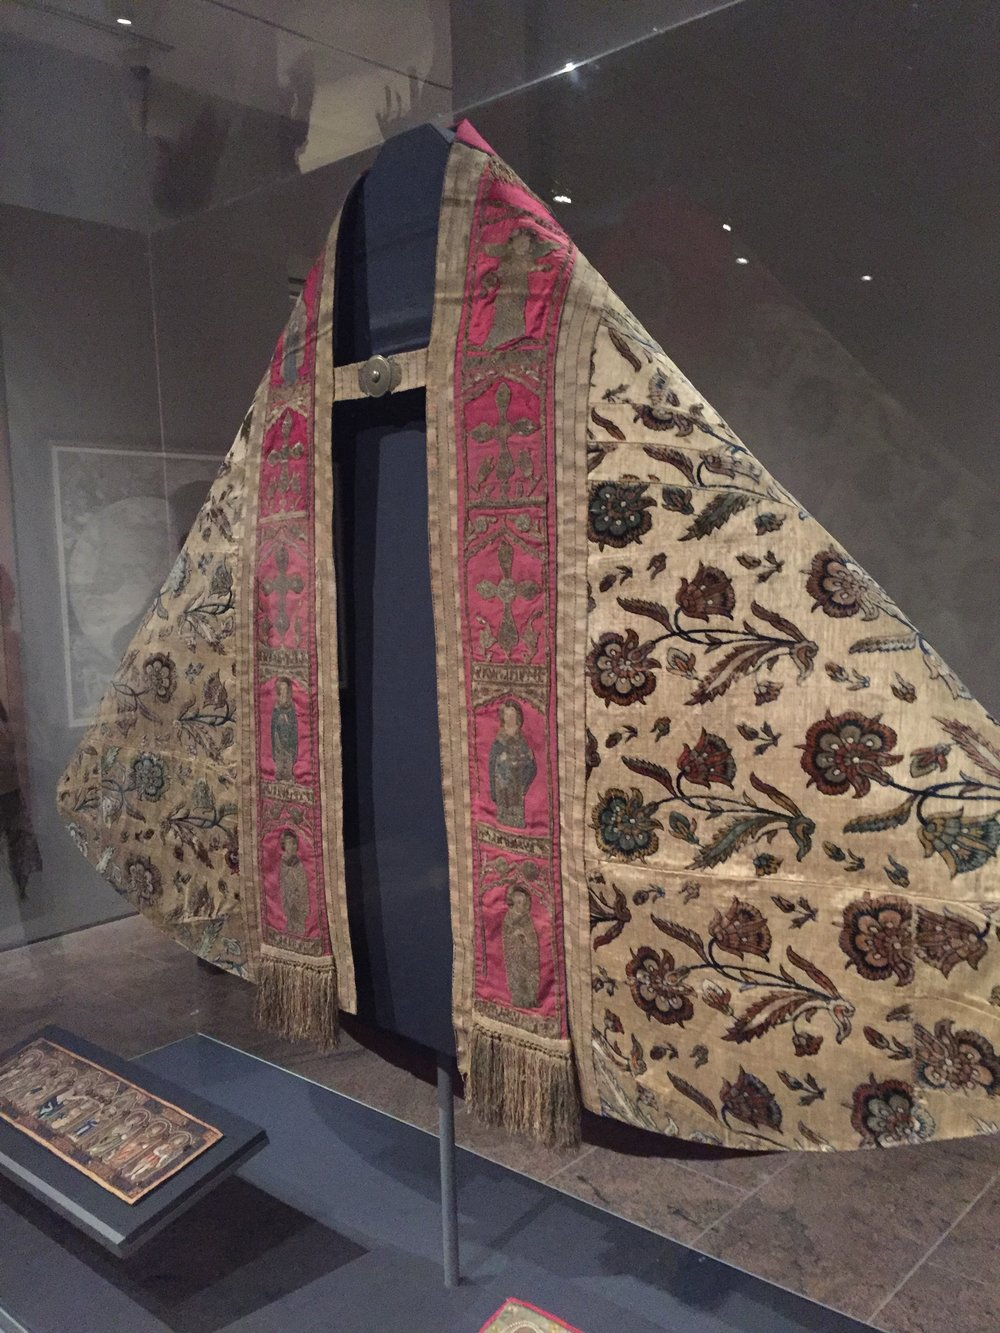 Vestments in the Armenian art exhibit at the Metropolitan Museum of Art.